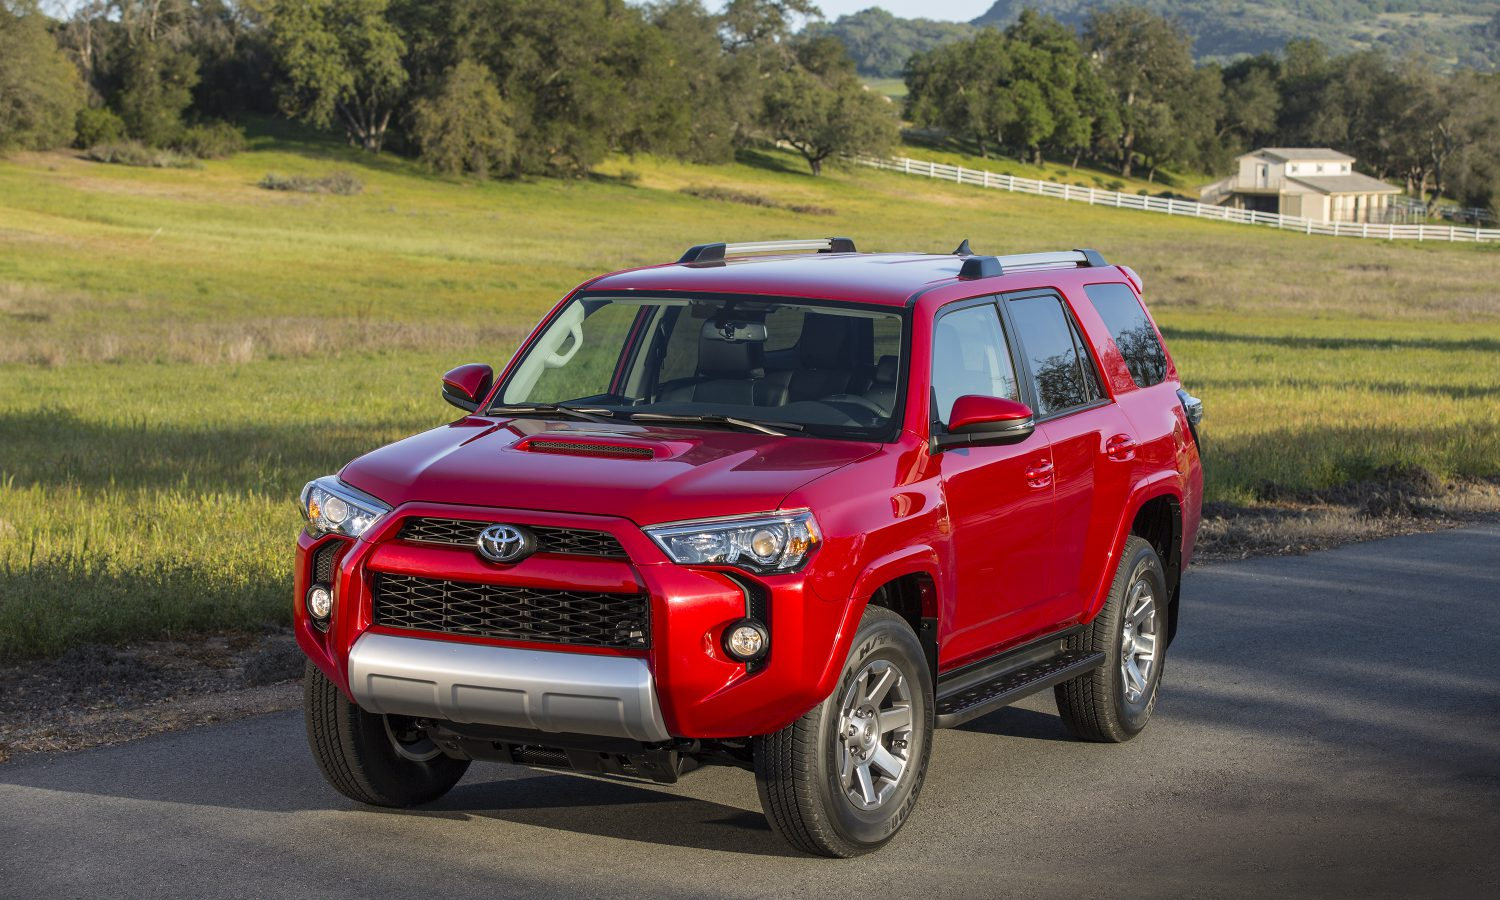 Toyota 4runner 30 Years Of Faithful Service And Fun Now Offered In Rugged Trd Pro Series Formula Toyota Usa Newsroom